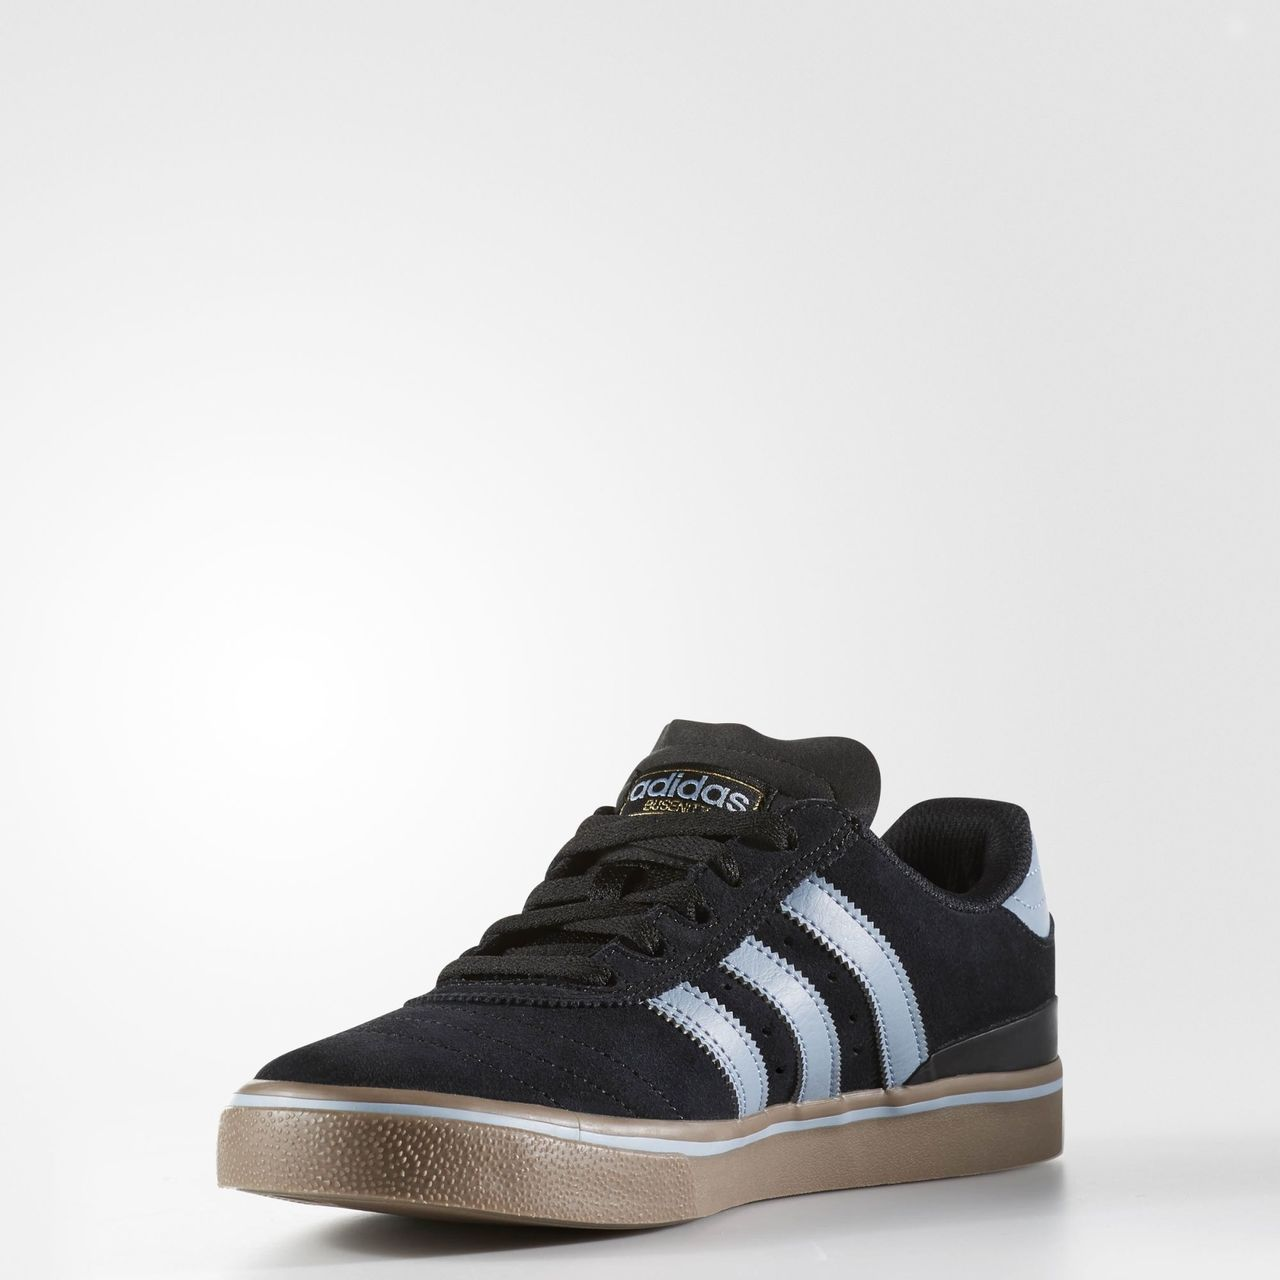 Adidas Busenitz Vulc Red Shoes In India